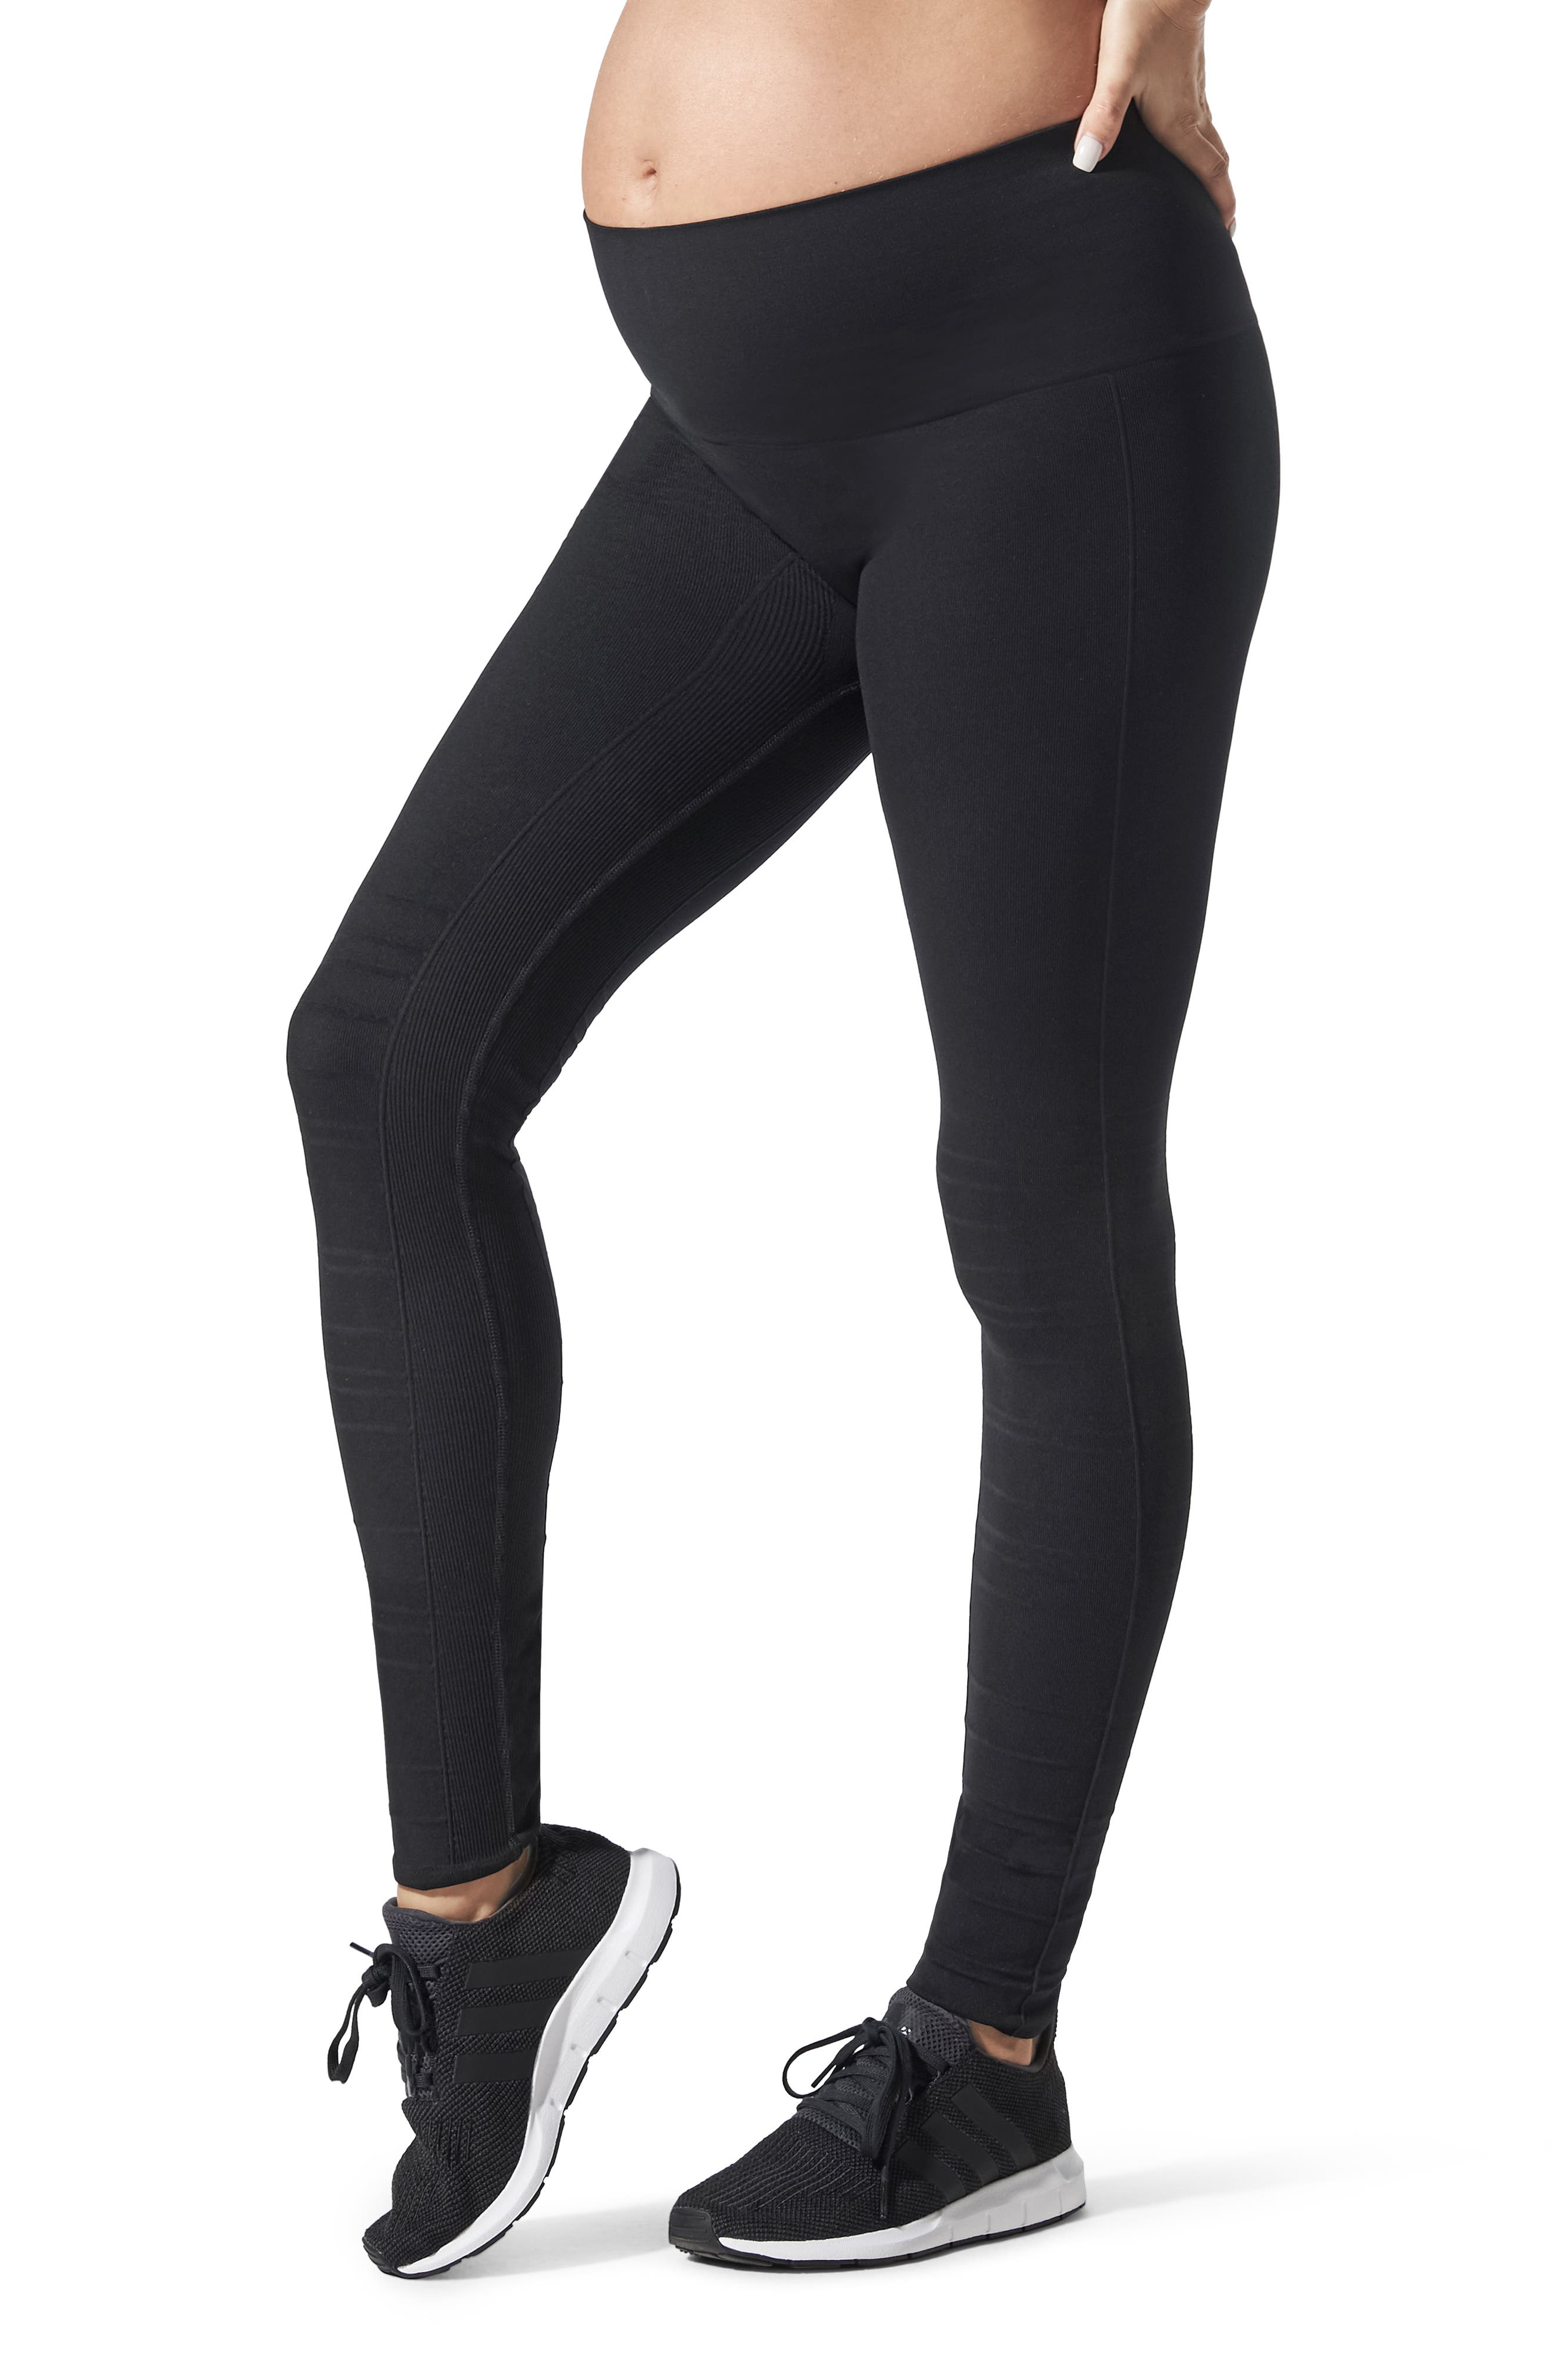 Blanqi Sportsupport Hipster Cuffed Support Maternity/postpartum Leggings, Black